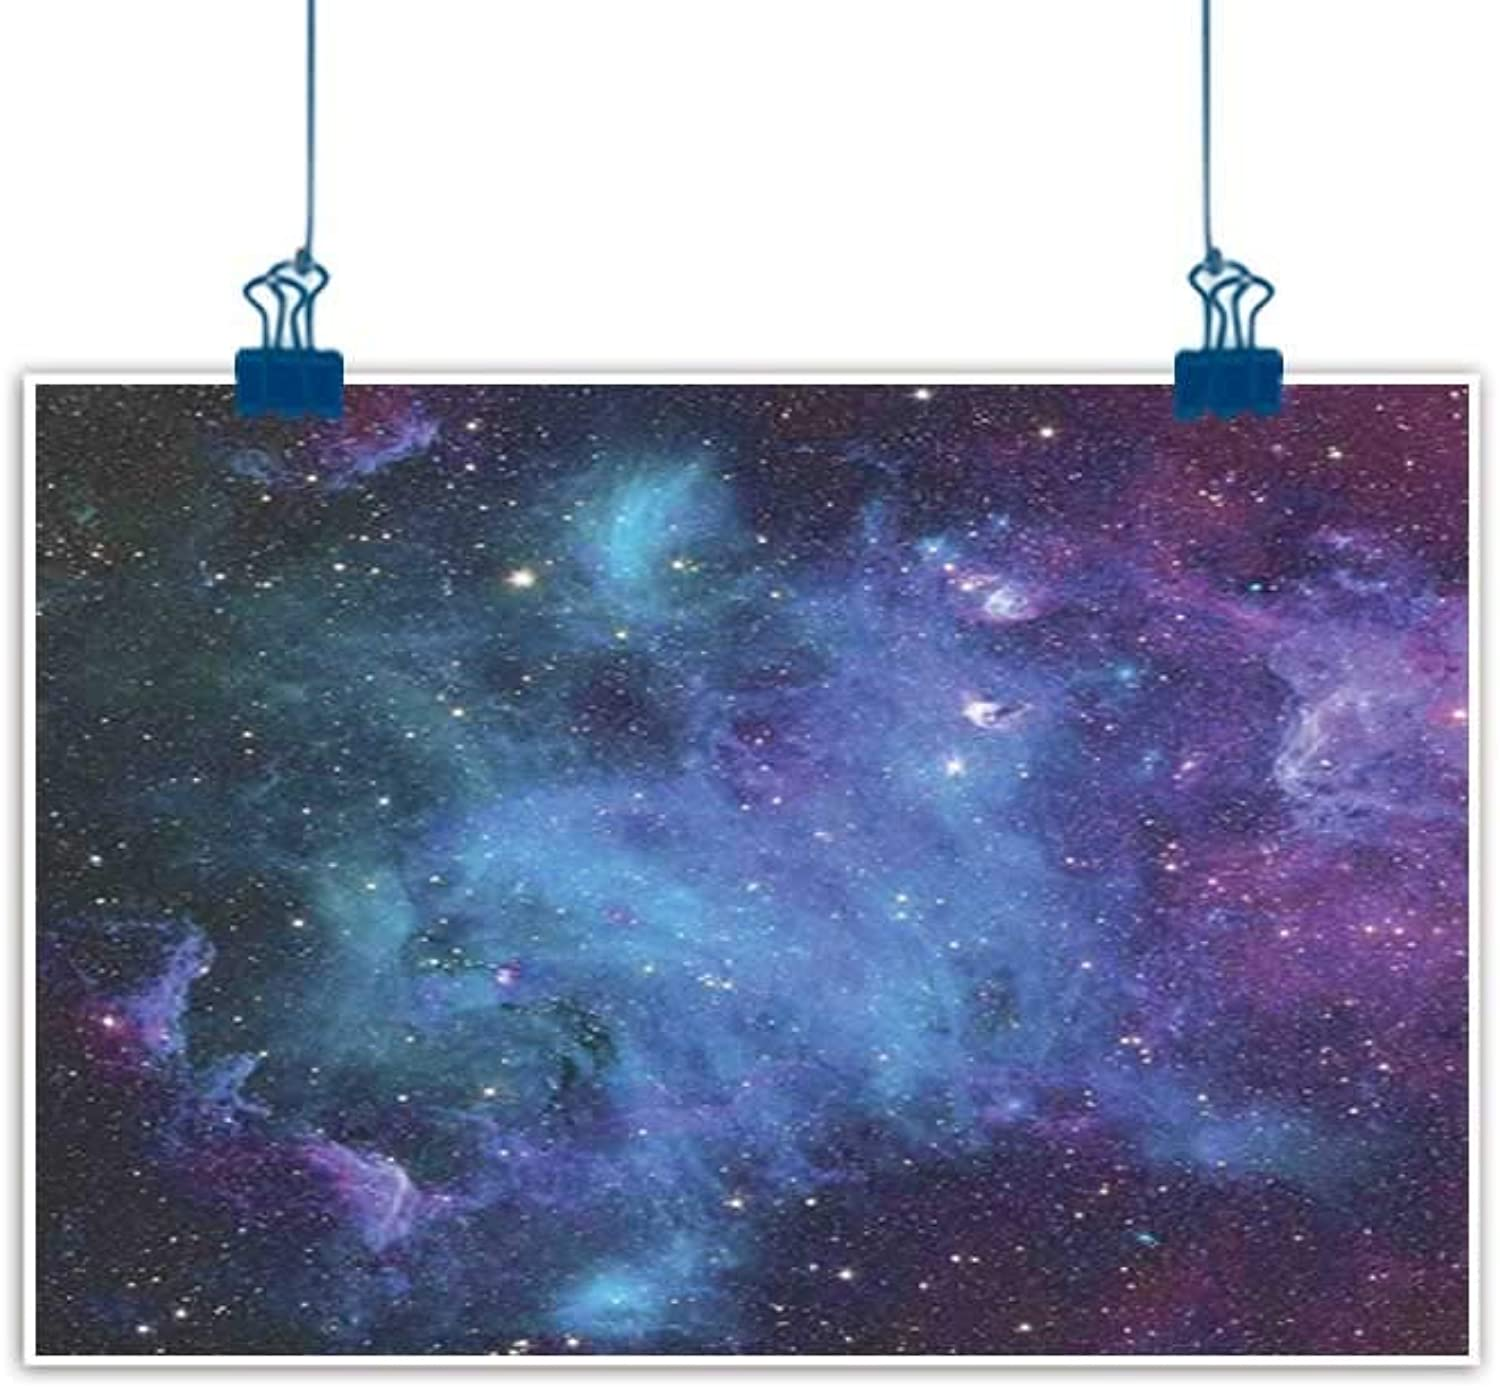 Simple Life Minimalist Space Decorations,Galaxy Stars in Space Celestial Astronomic Planets in the Universe Milky Way Print,Navy Purple for Boys Room Baby Nursery Wall Decor Kids Room Boys Gift 48 x32